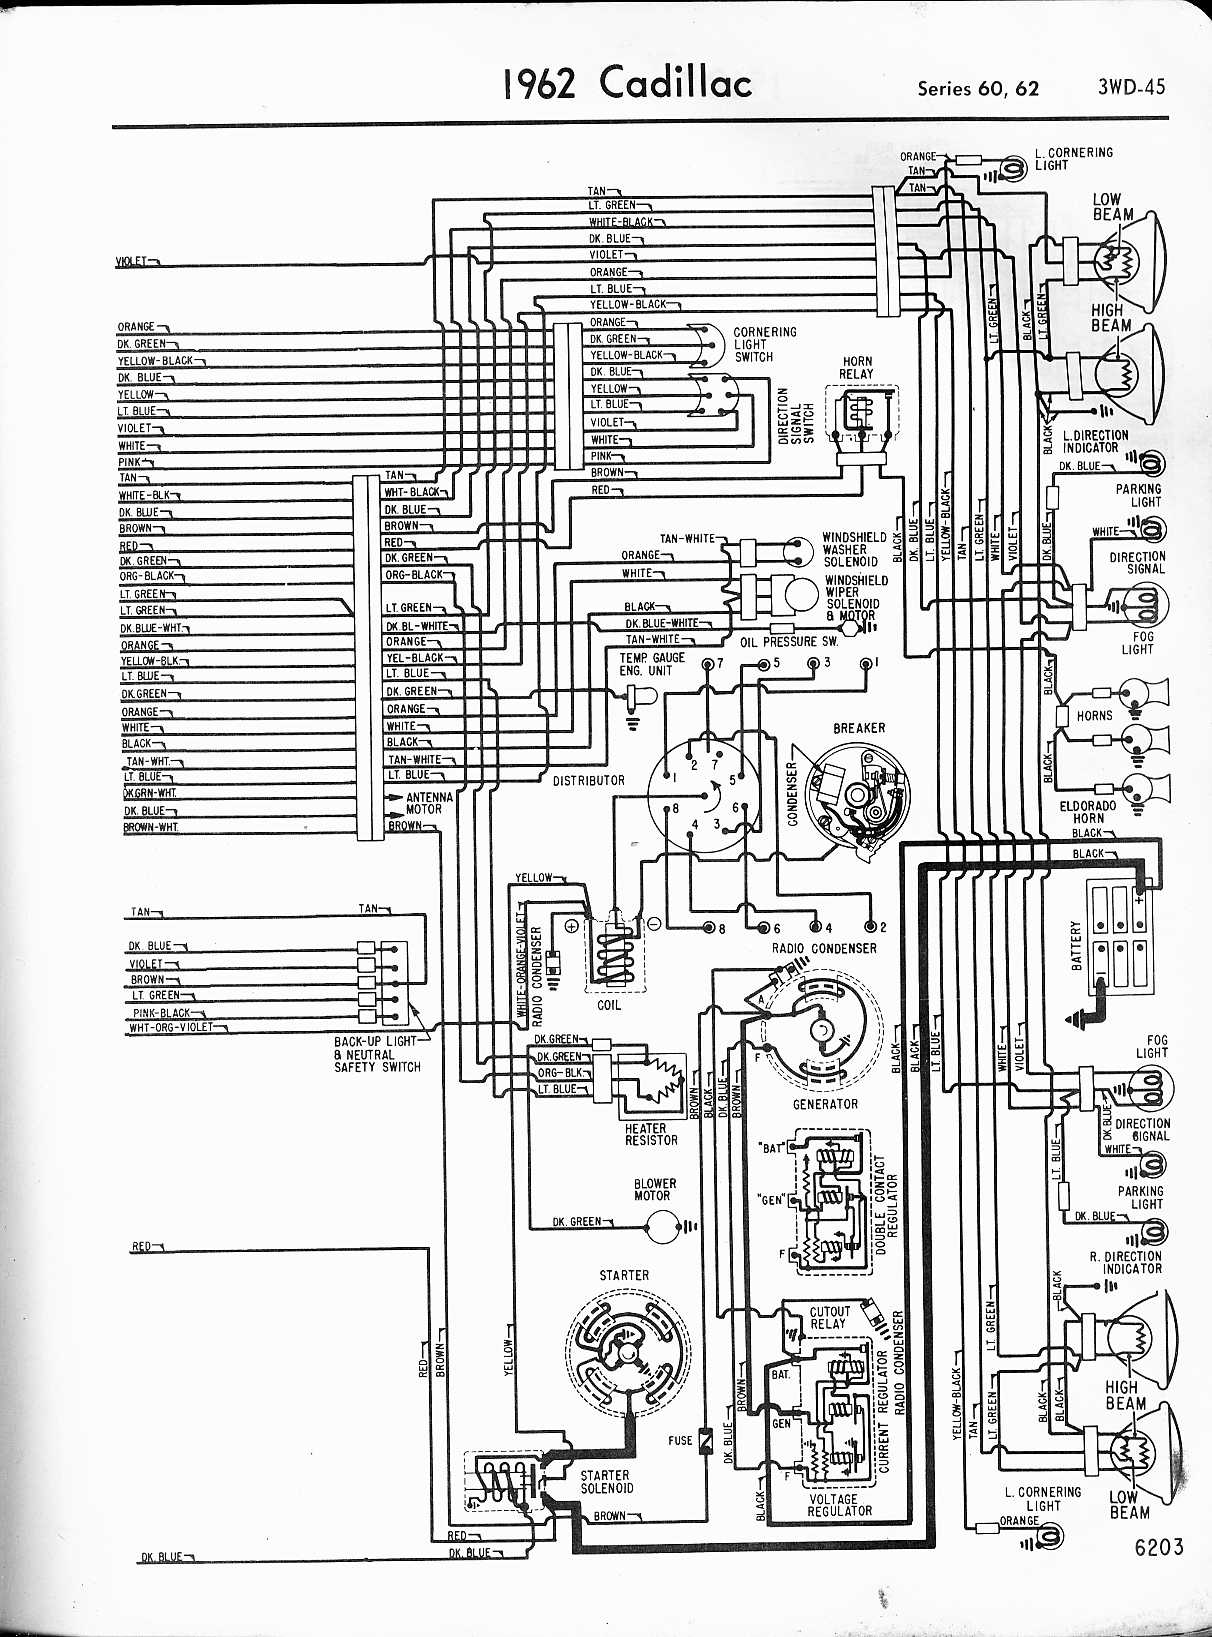 [DIAGRAM_3US]  1965 Cadillac Wiring Diagram Diagram Base Website Wiring Diagram -  HEARTDIAGRAMWORKSHEET.RIFUGIDELLAROSA.IT | Cadillac Engine Wiring Diagram |  | Diagram Base Website Full Edition - rifugidellarosa